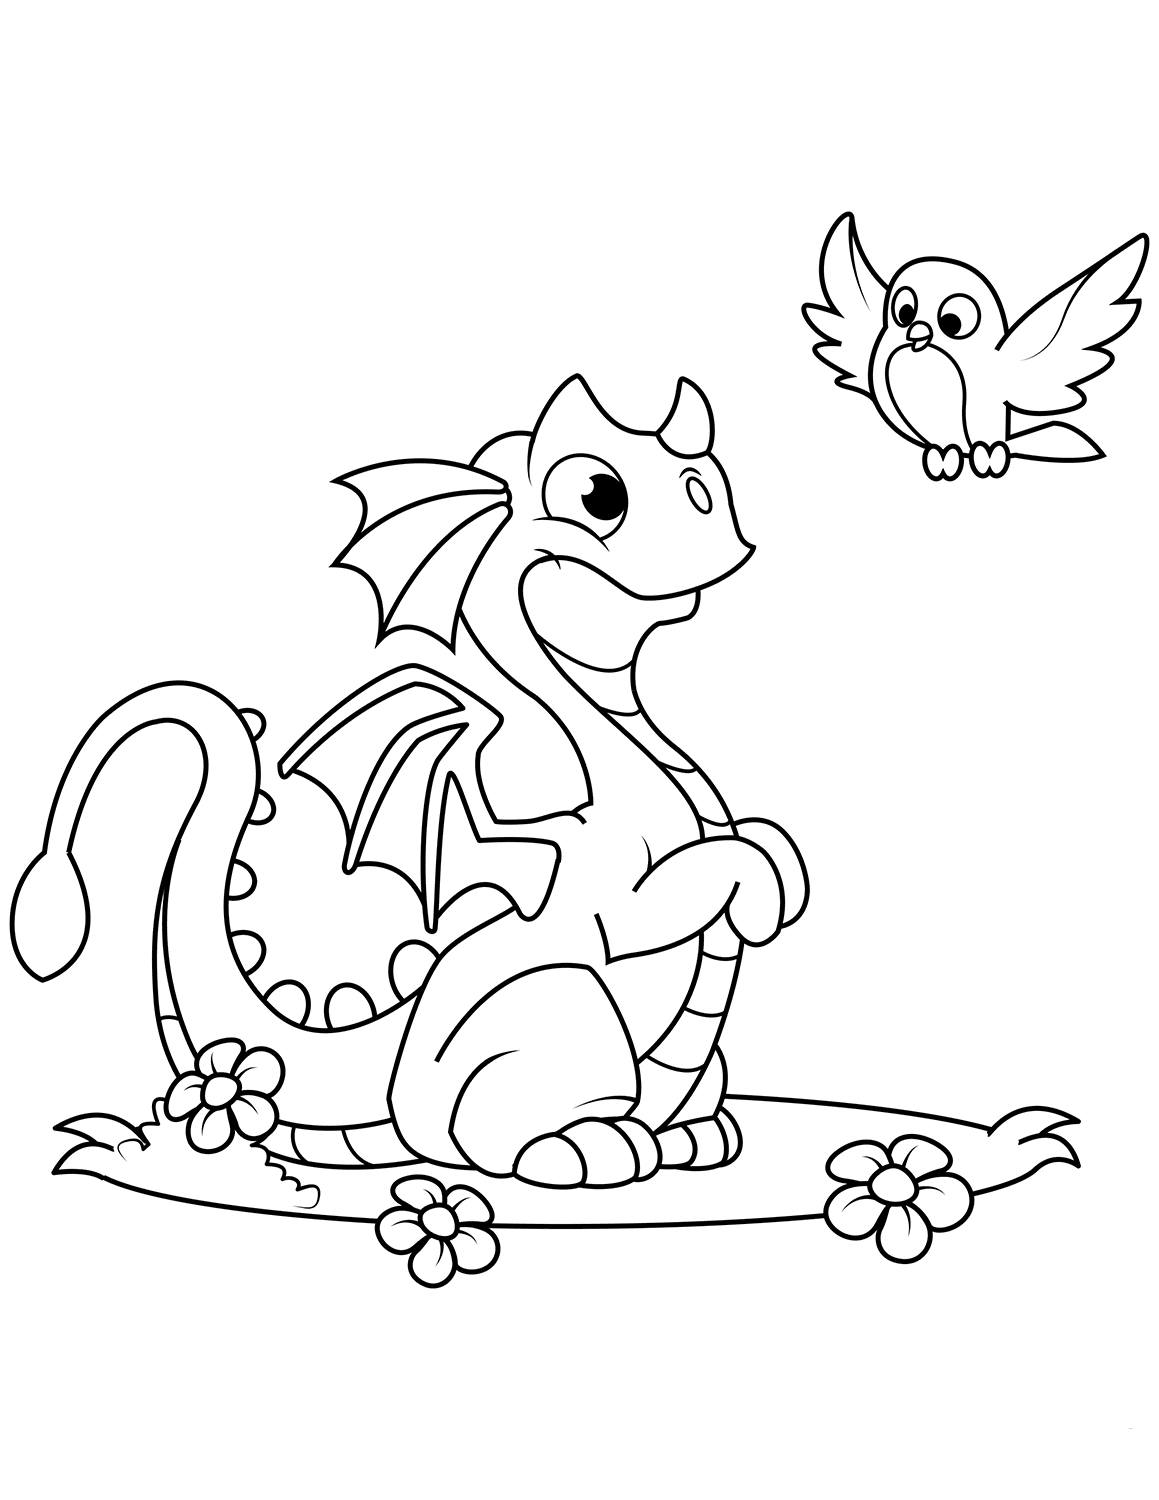 printable dragon pictures color the dragon coloring pages in websites pictures printable dragon